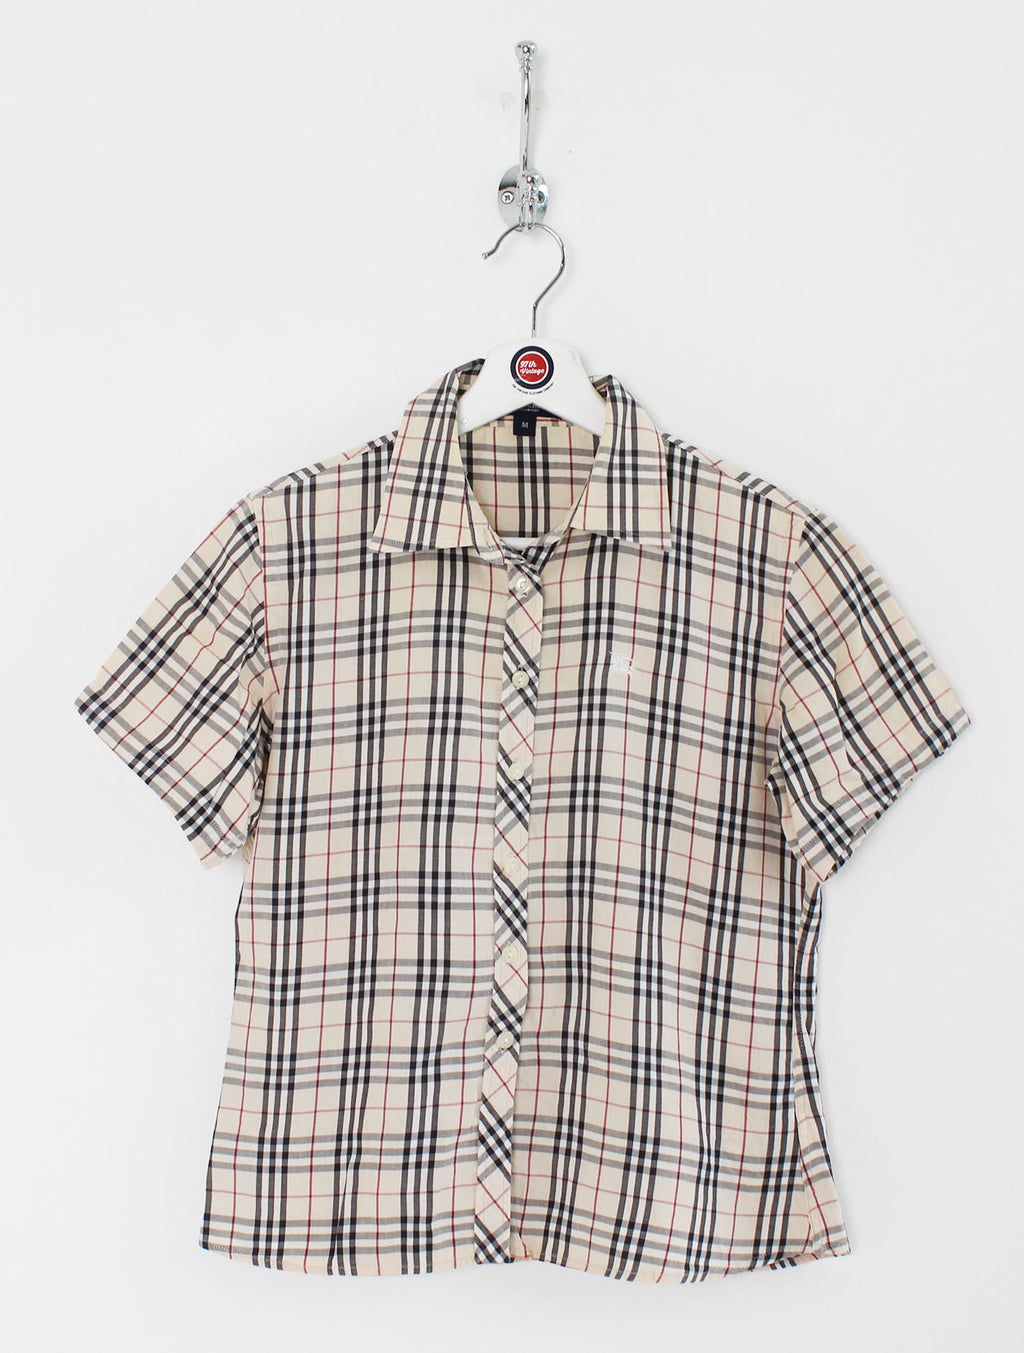 Women's Burberry Shirt (M)